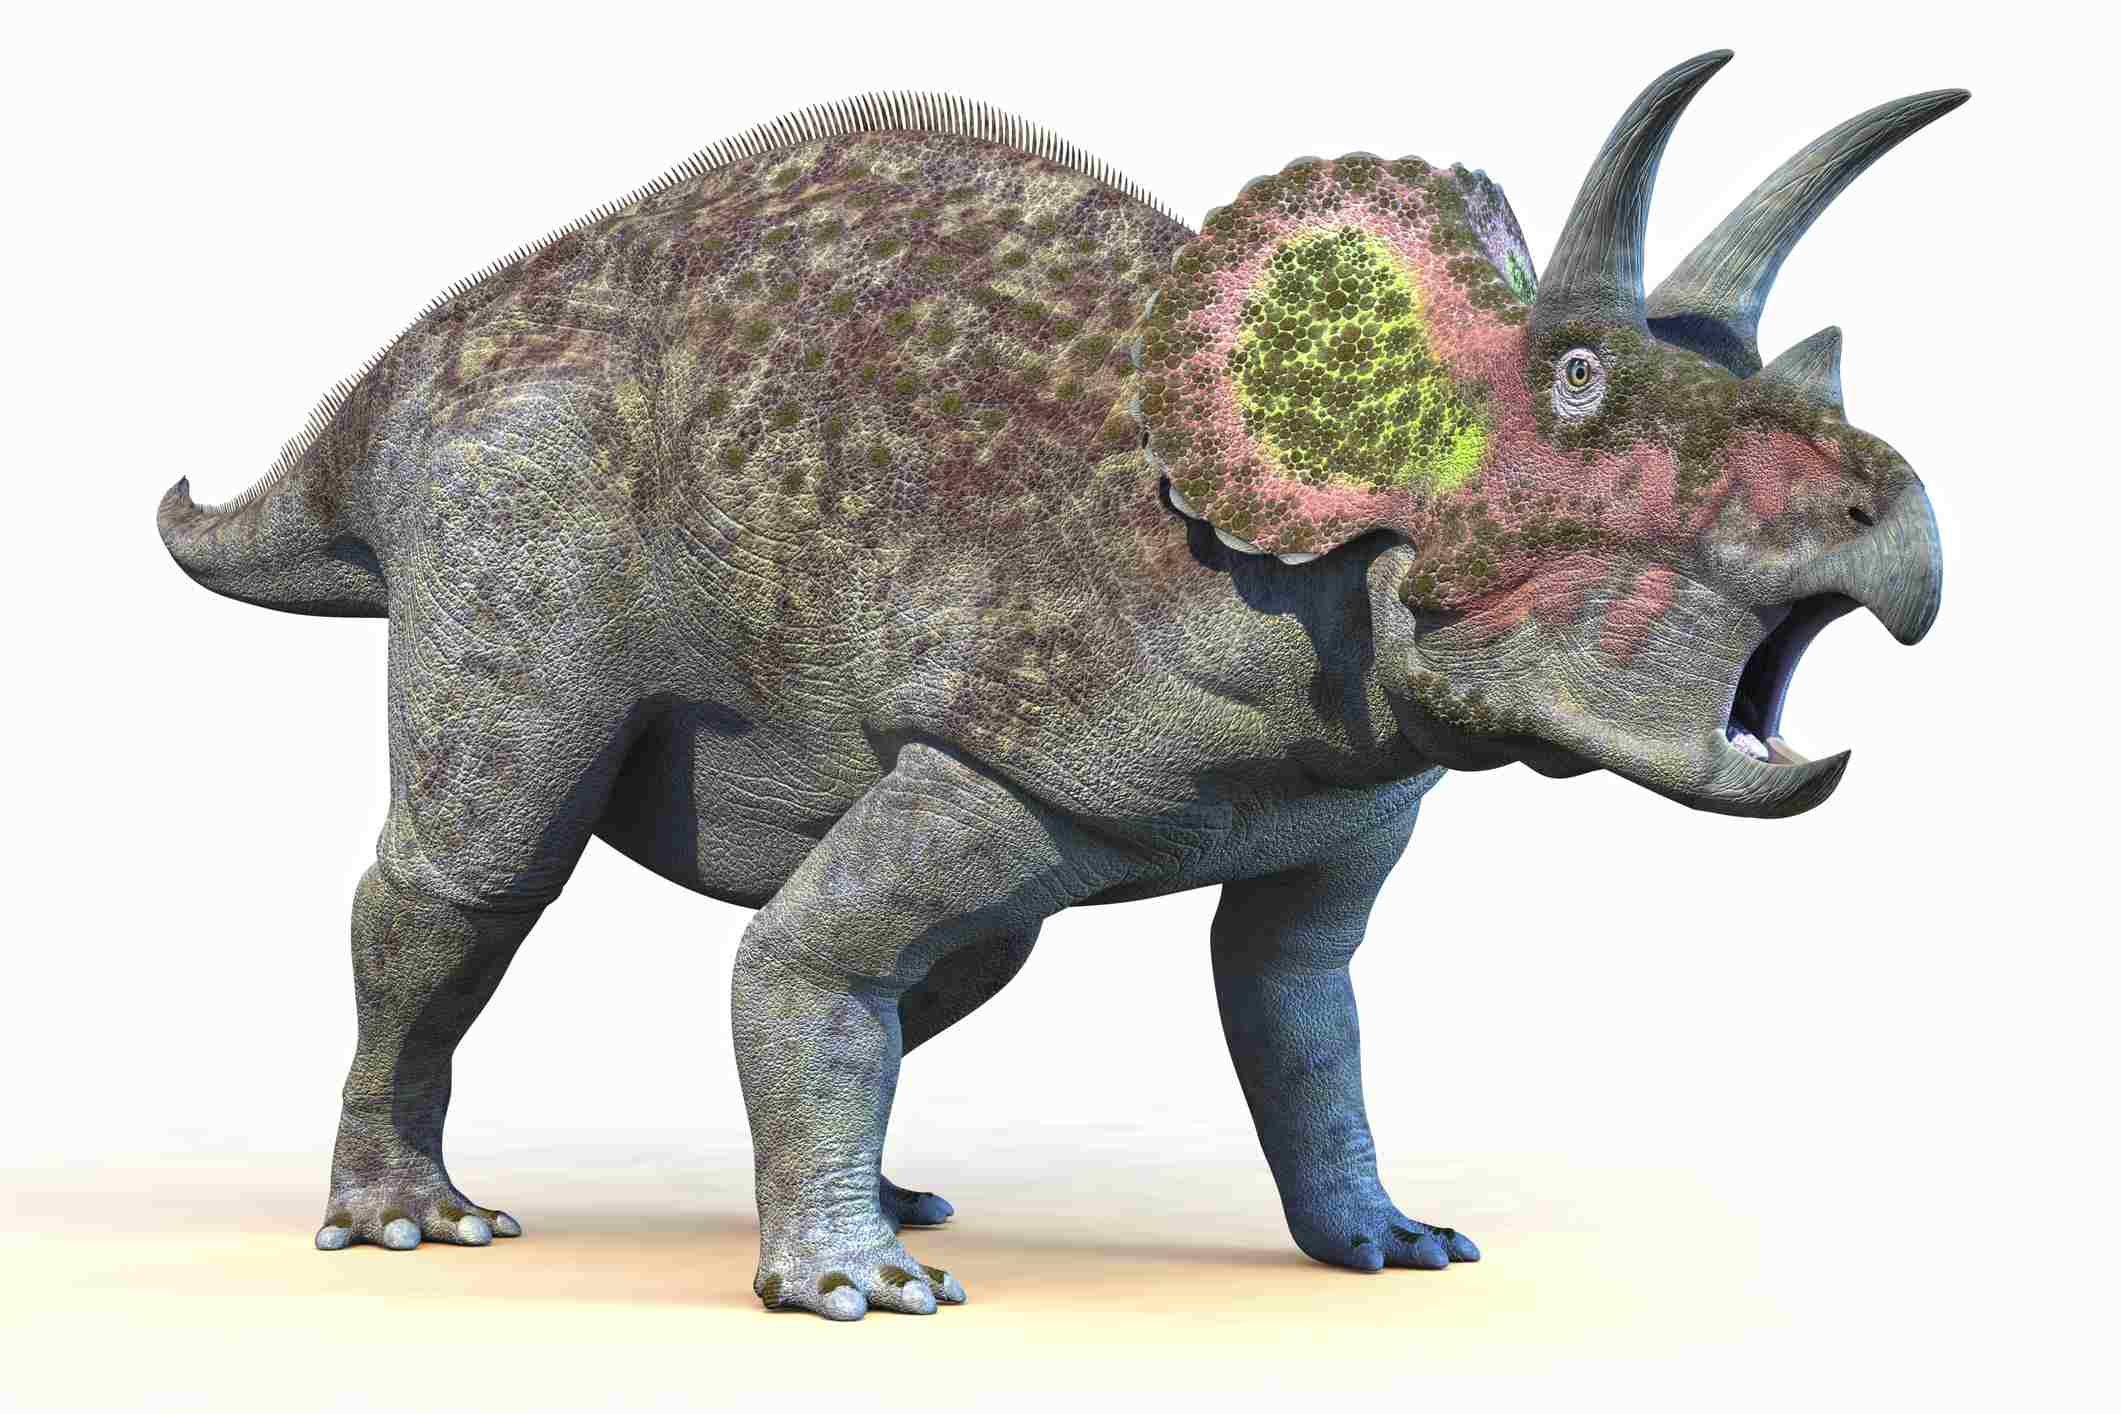 A colorful illustration of a triceratops dinosaur with a mouth wide open